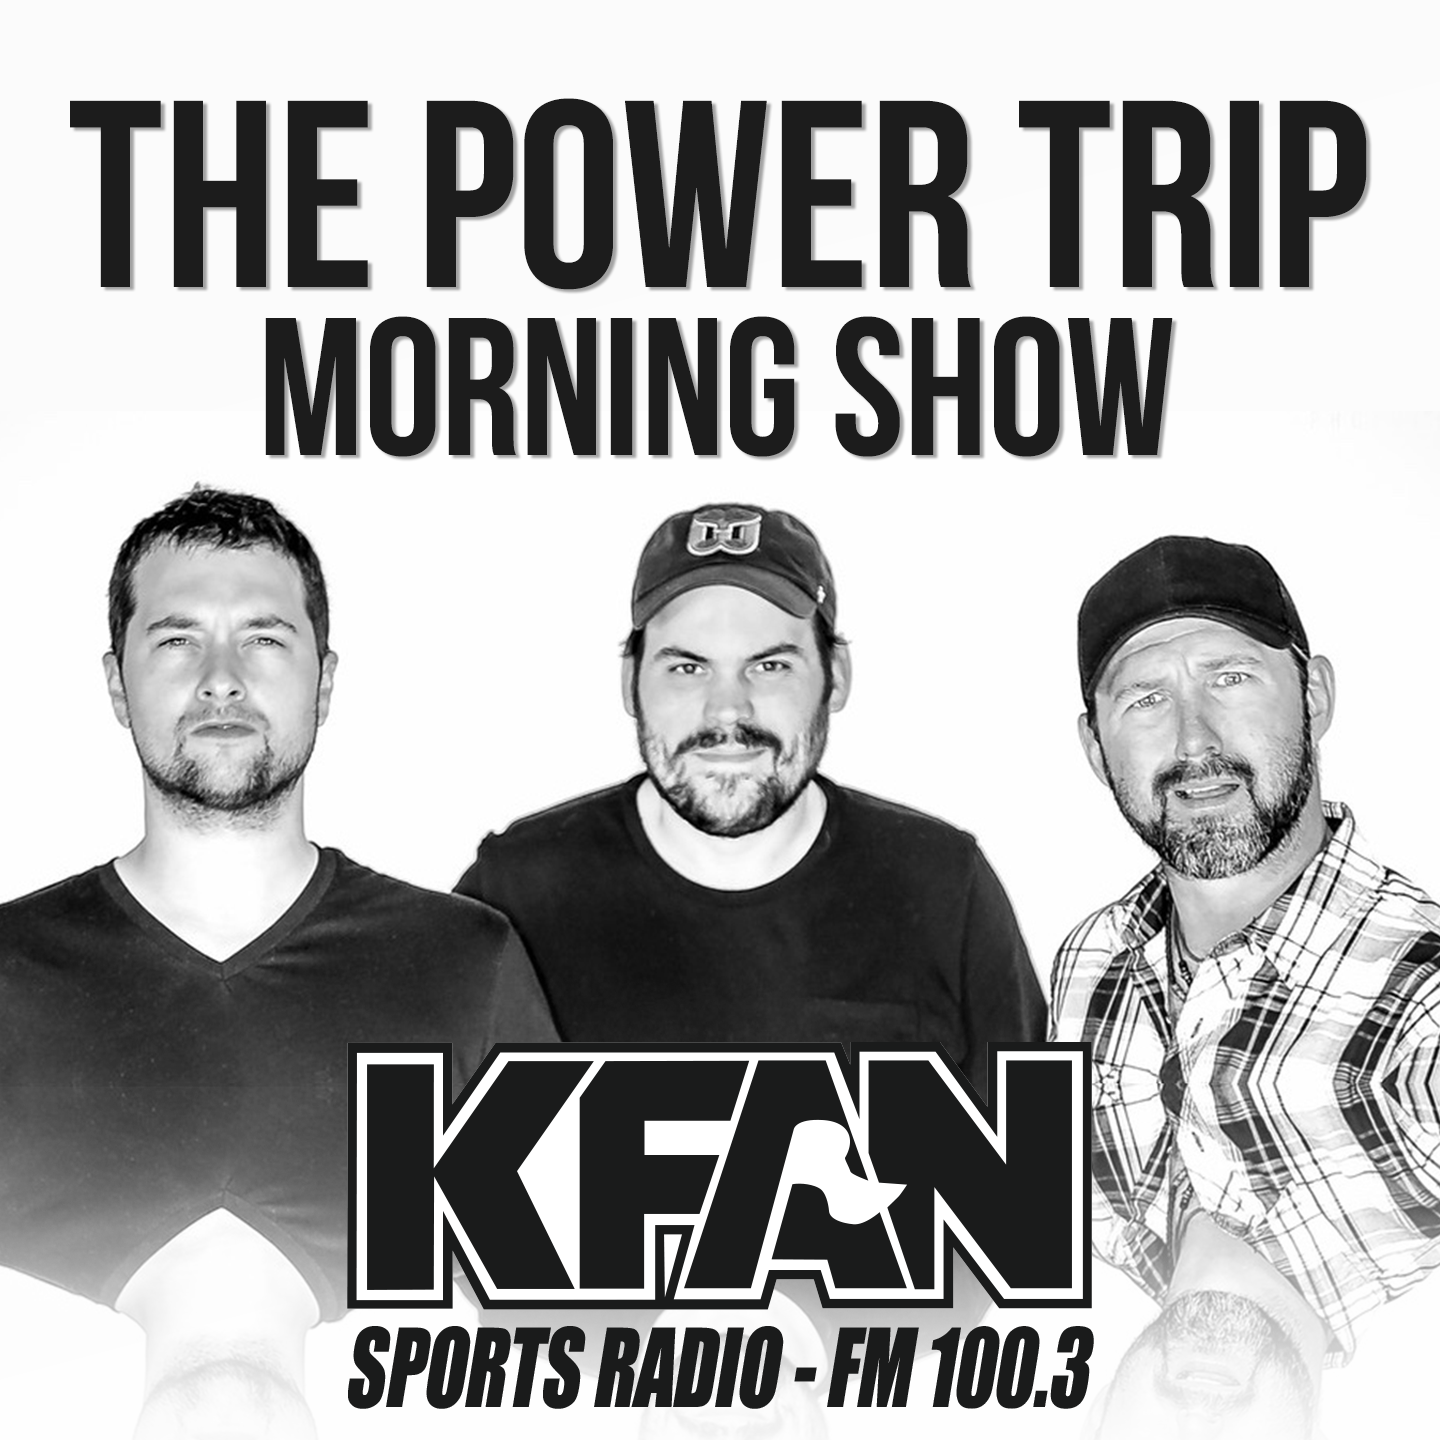 The Power Trip by KFAN 100.3 FM on Apple Podcasts 1a97651be